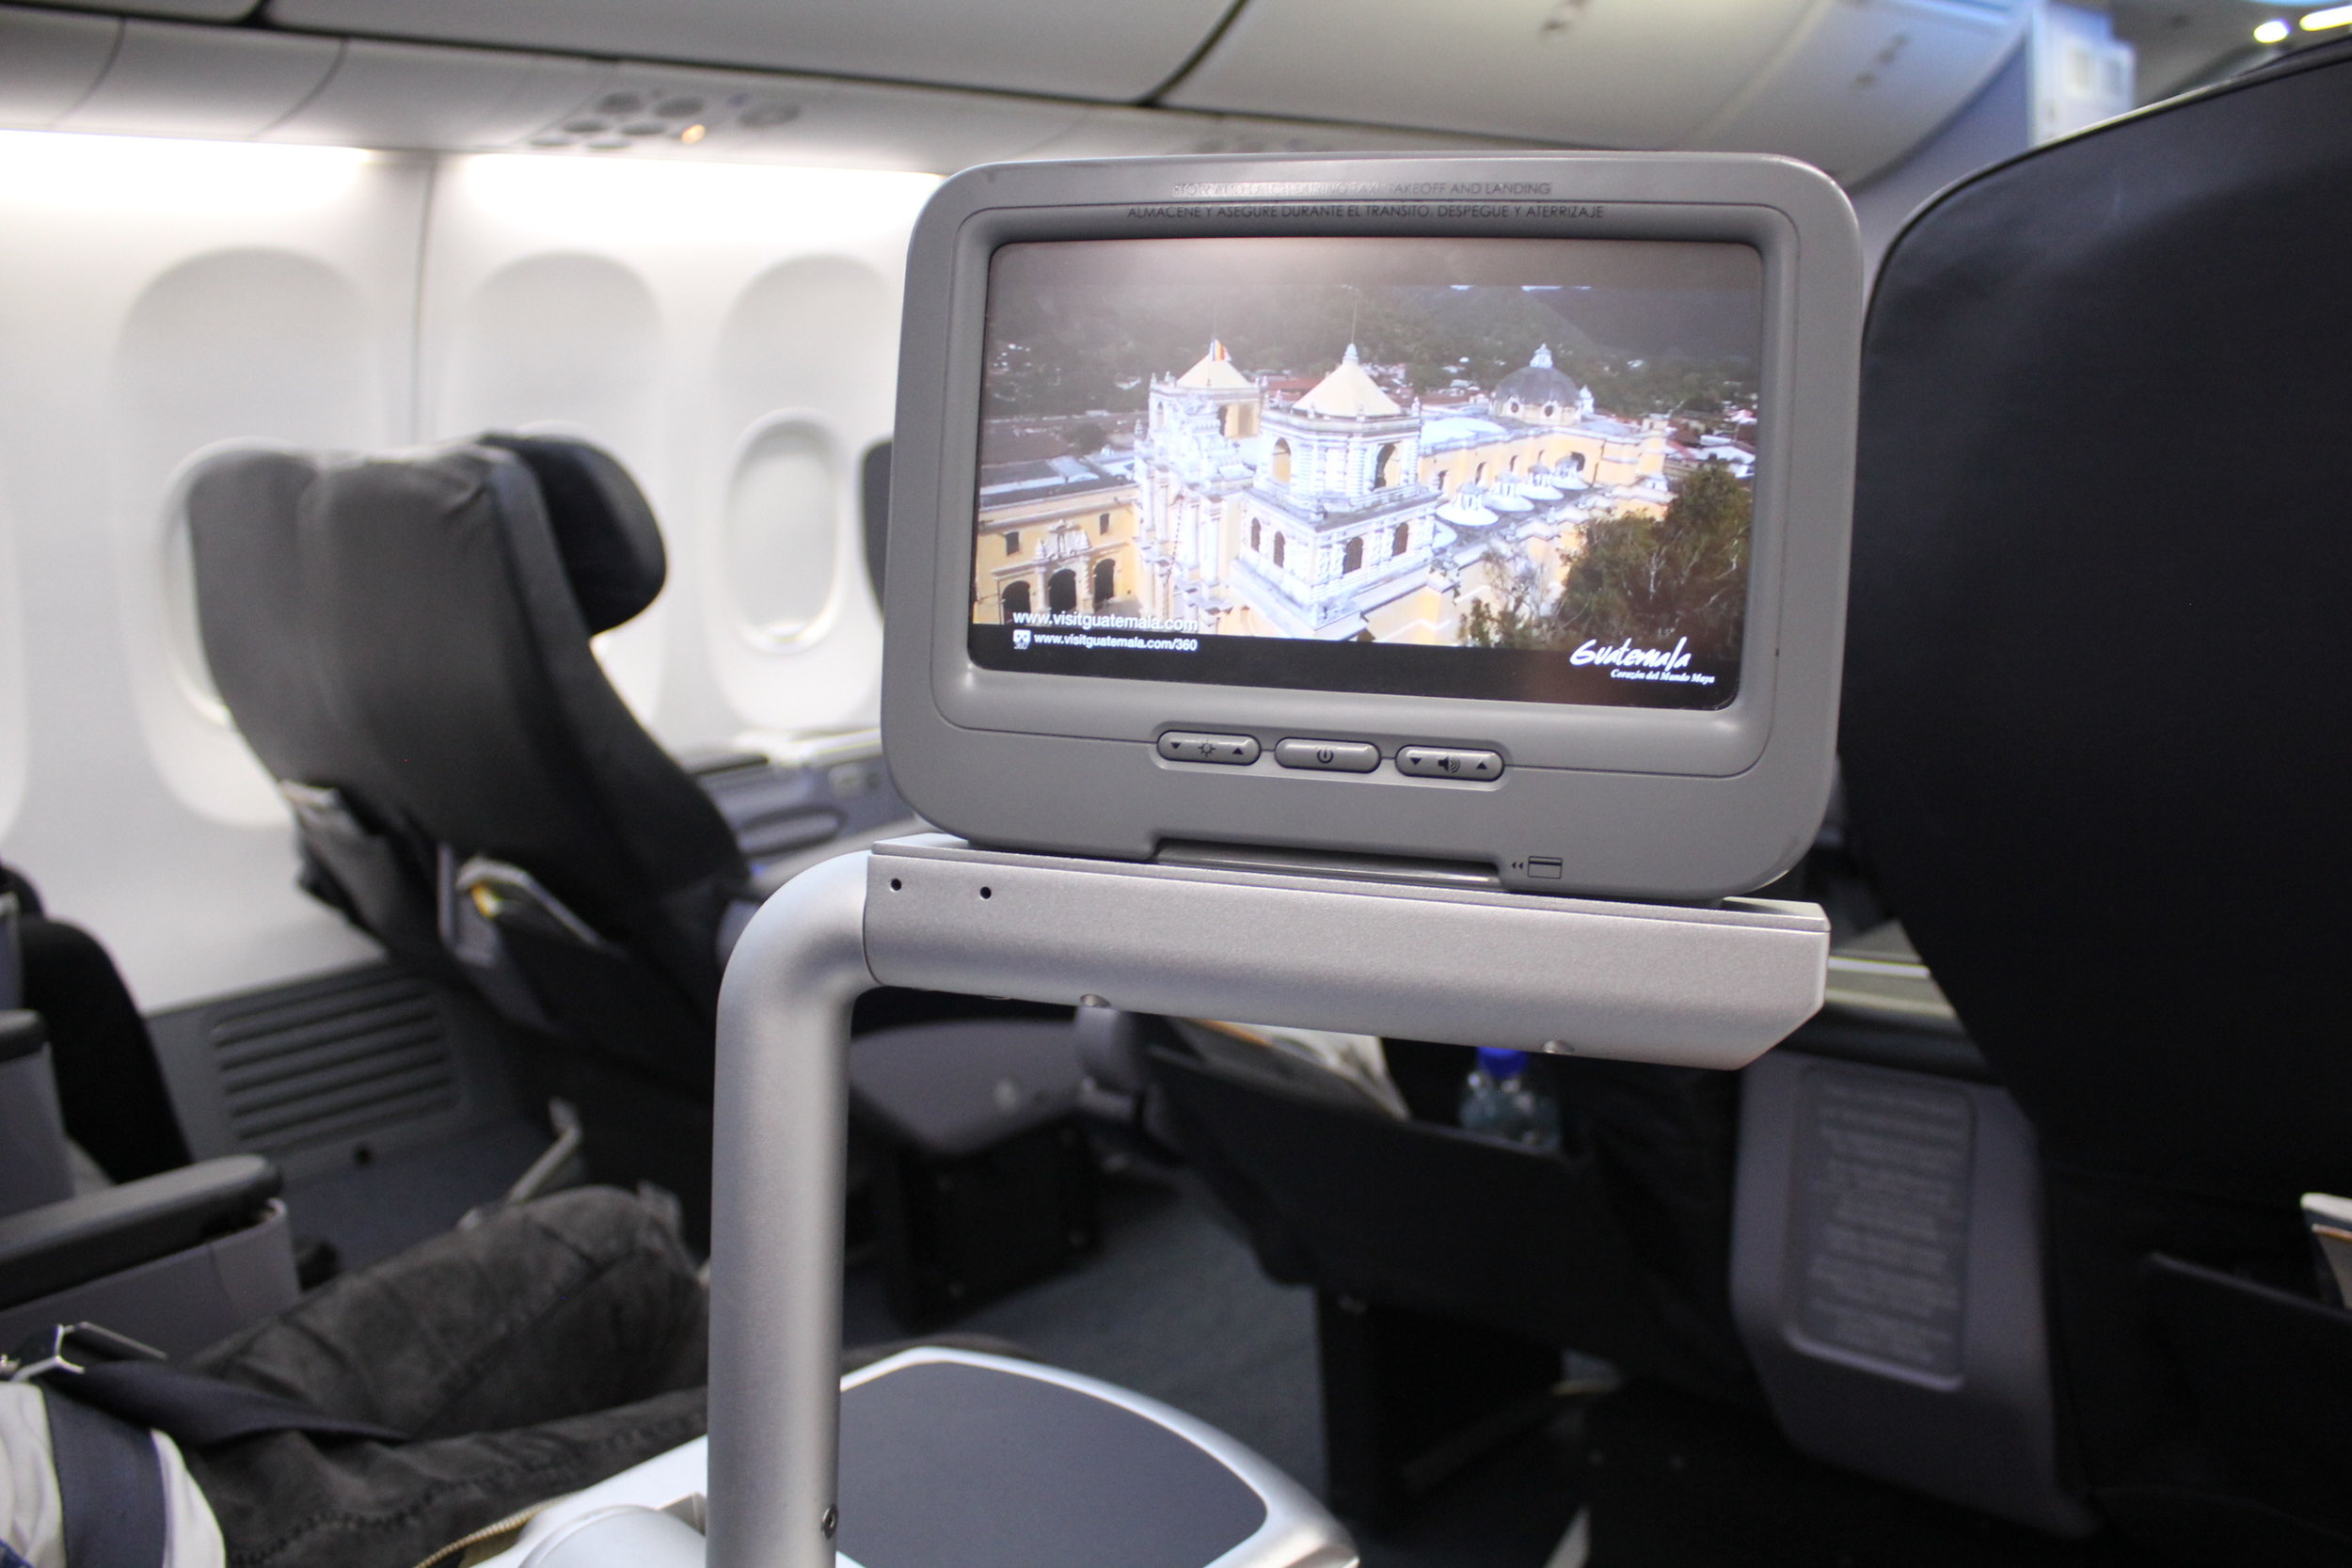 Copa Airlines business class – Entertainment system